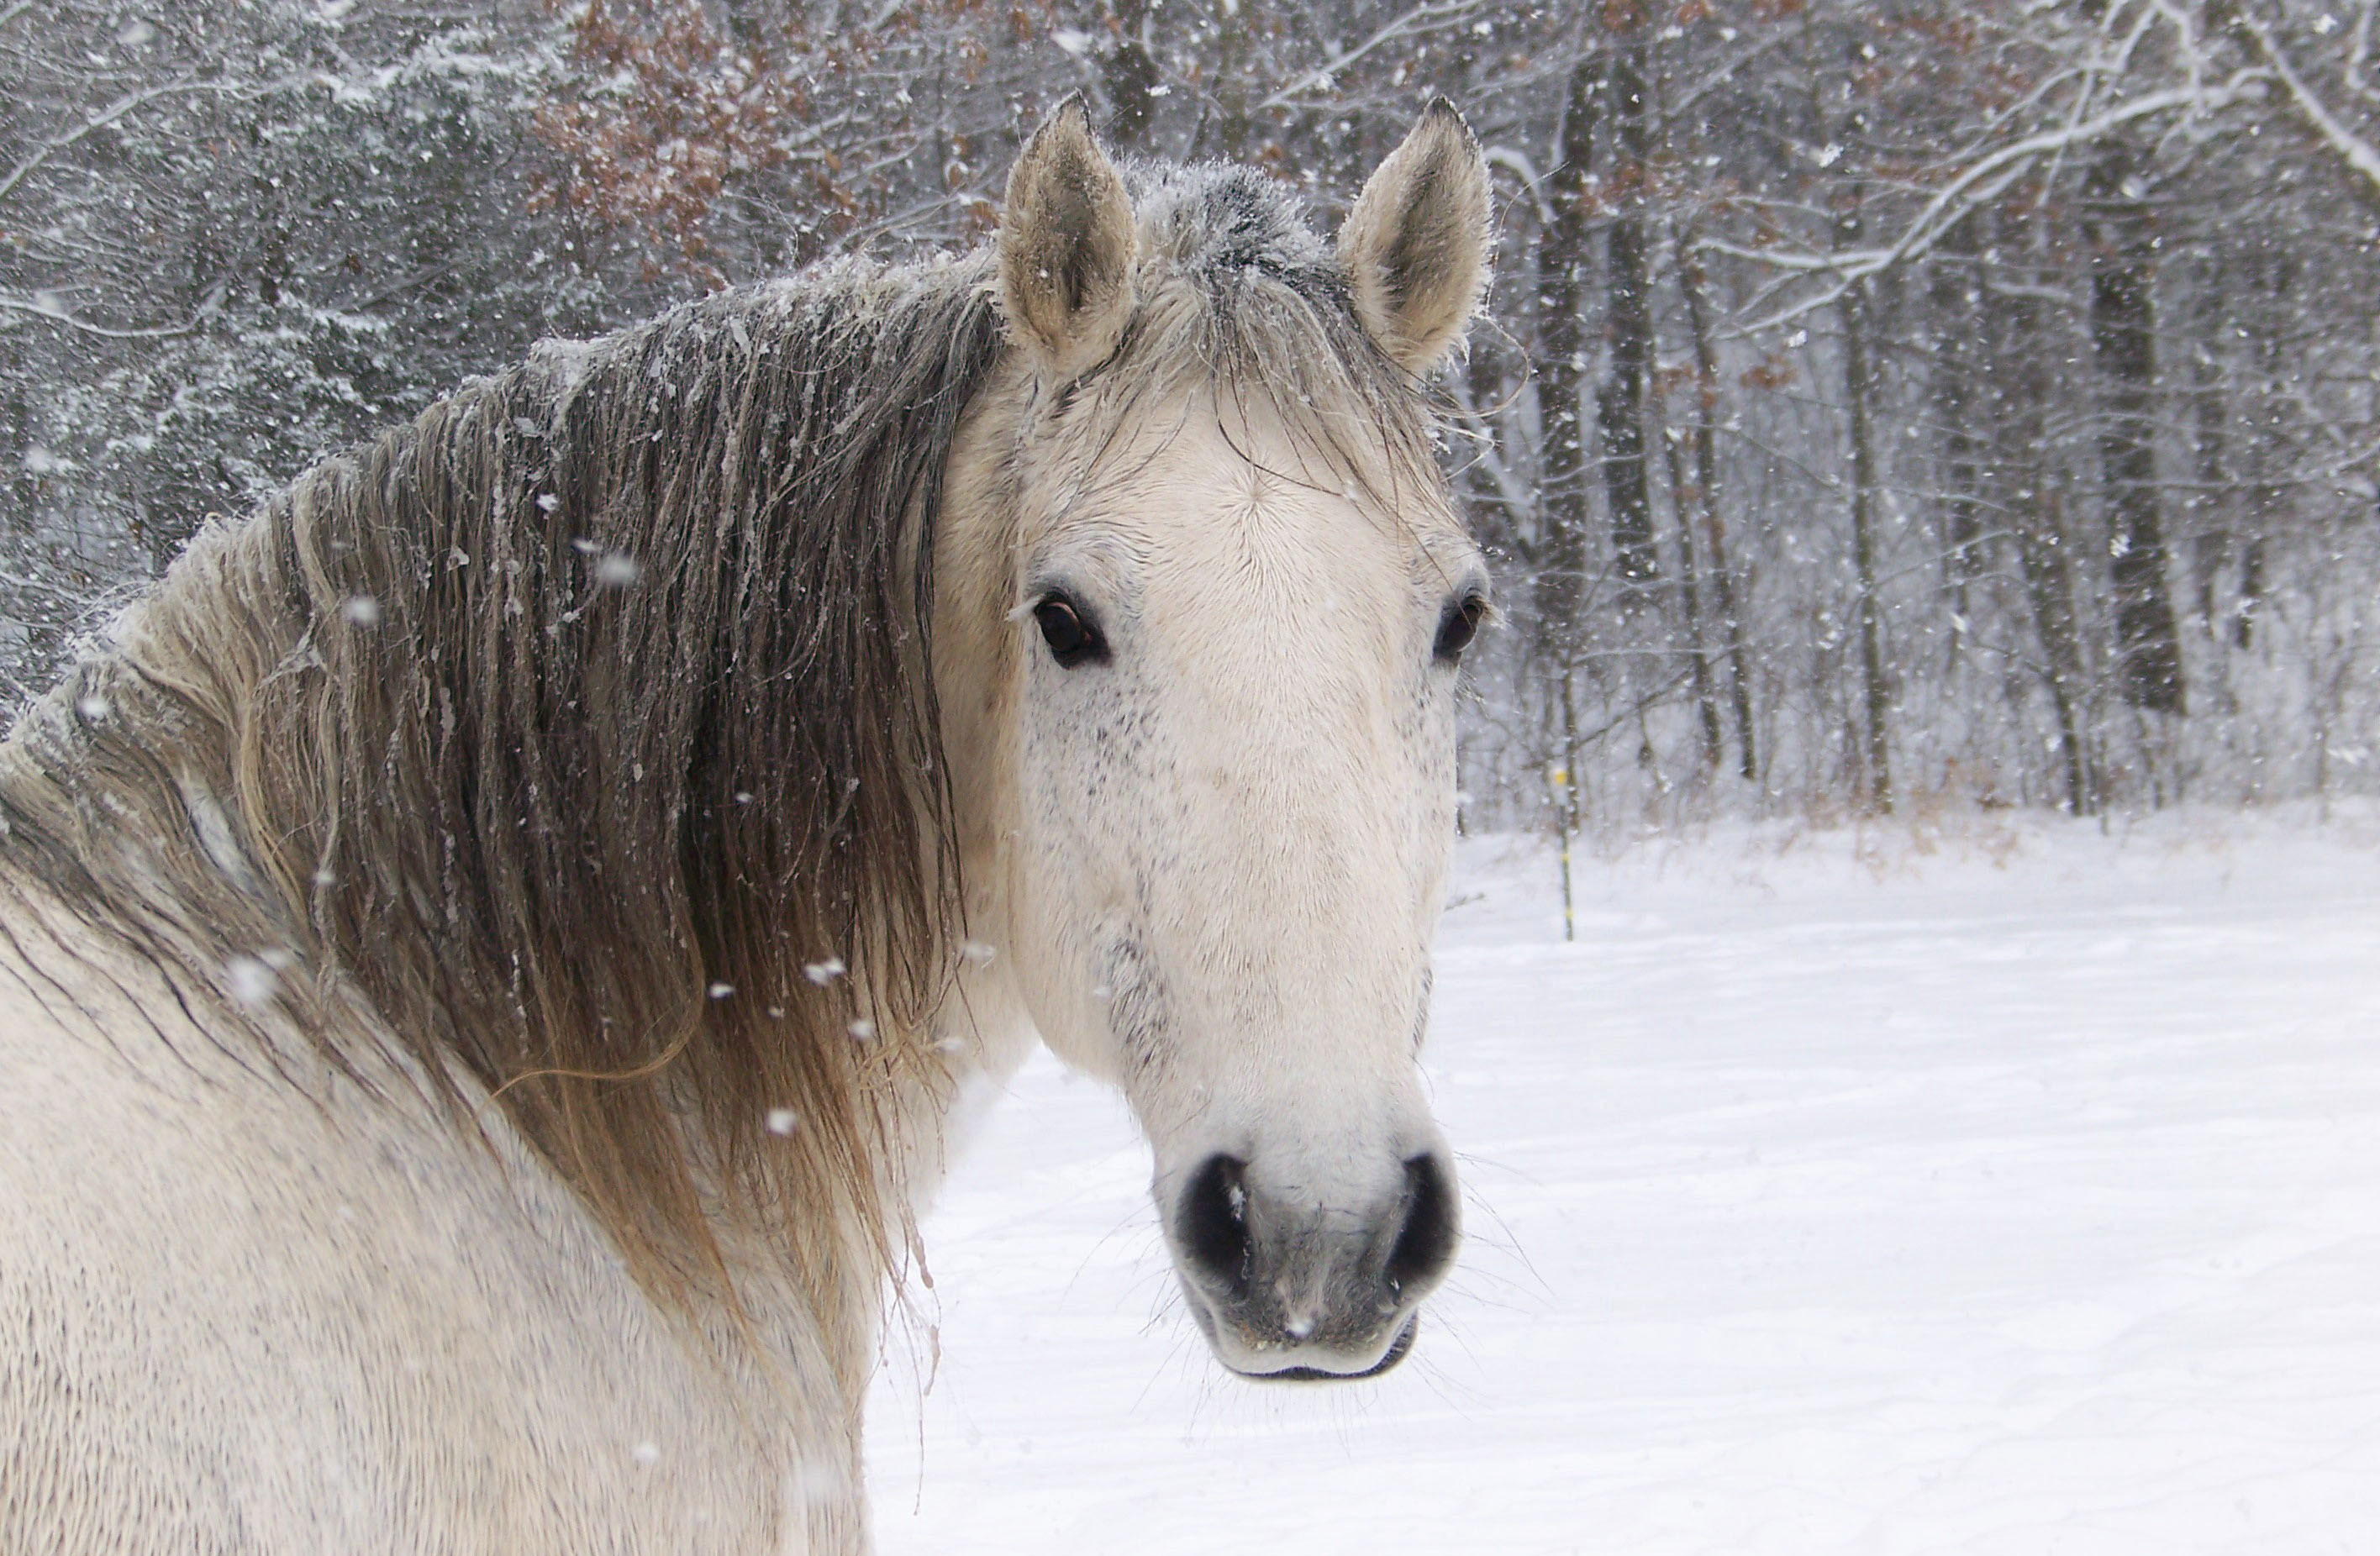 Winter Horse Wallpaper 55 images